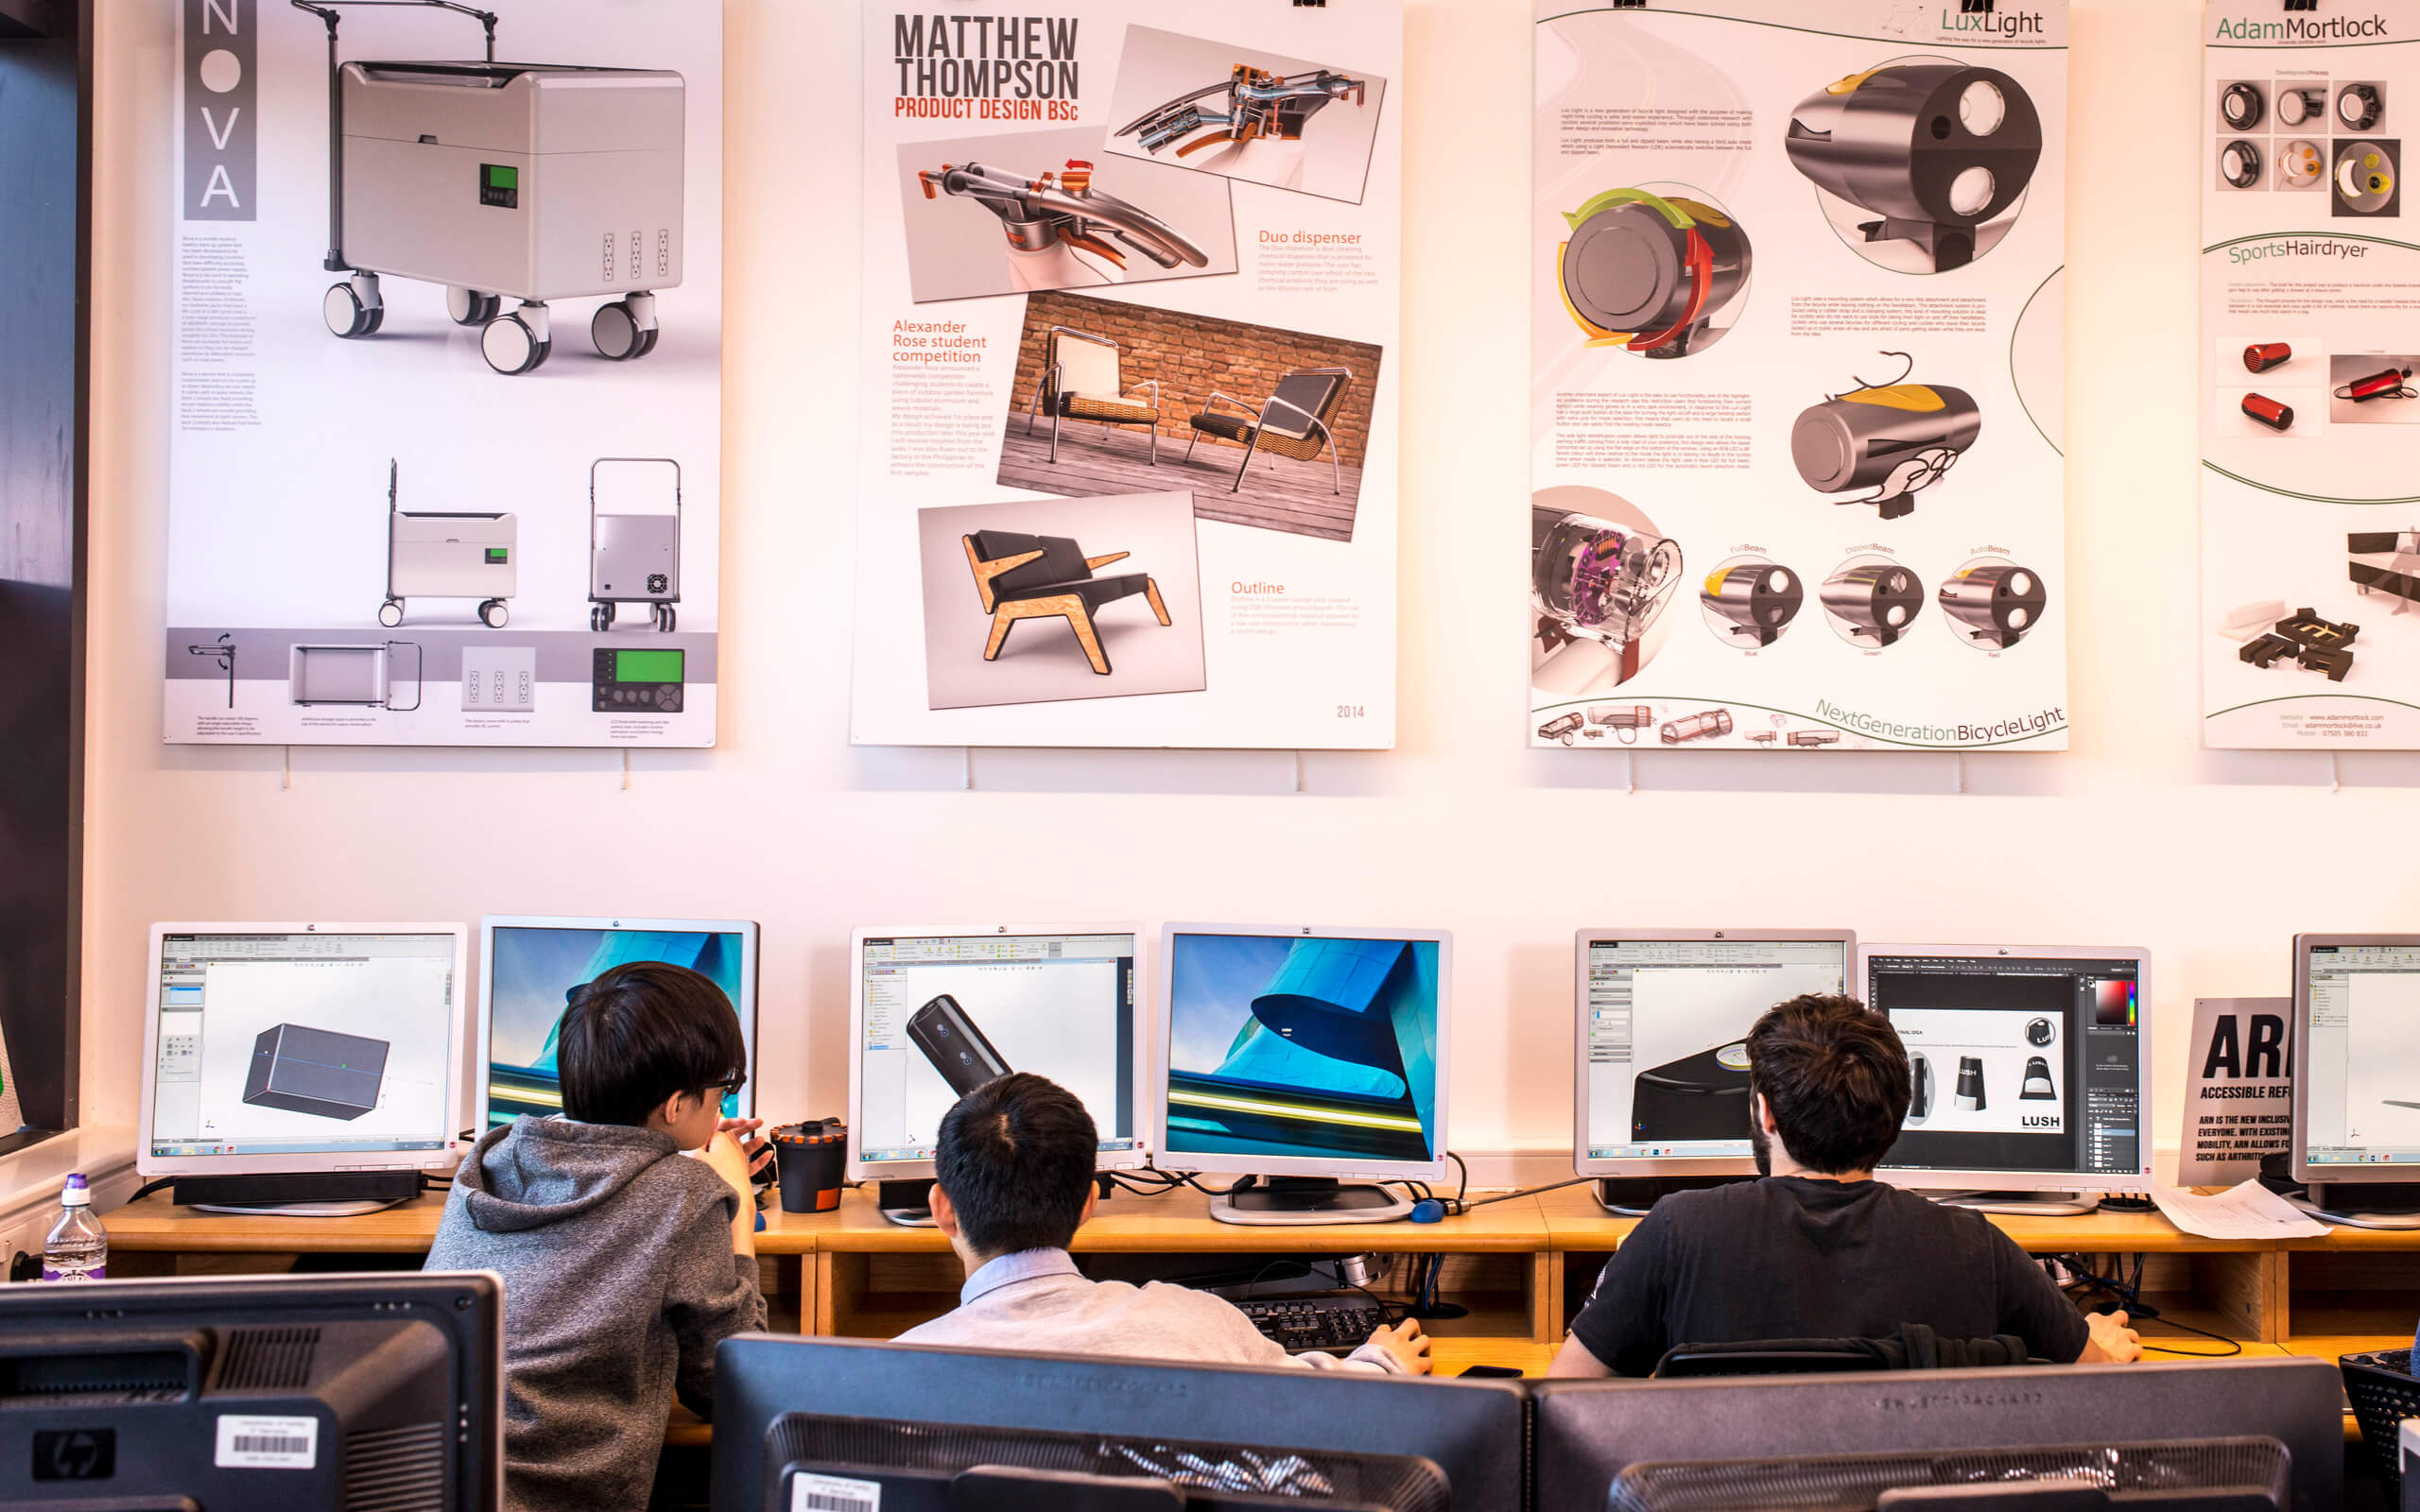 Students working in the product design studio with work displayed on the wall behind them